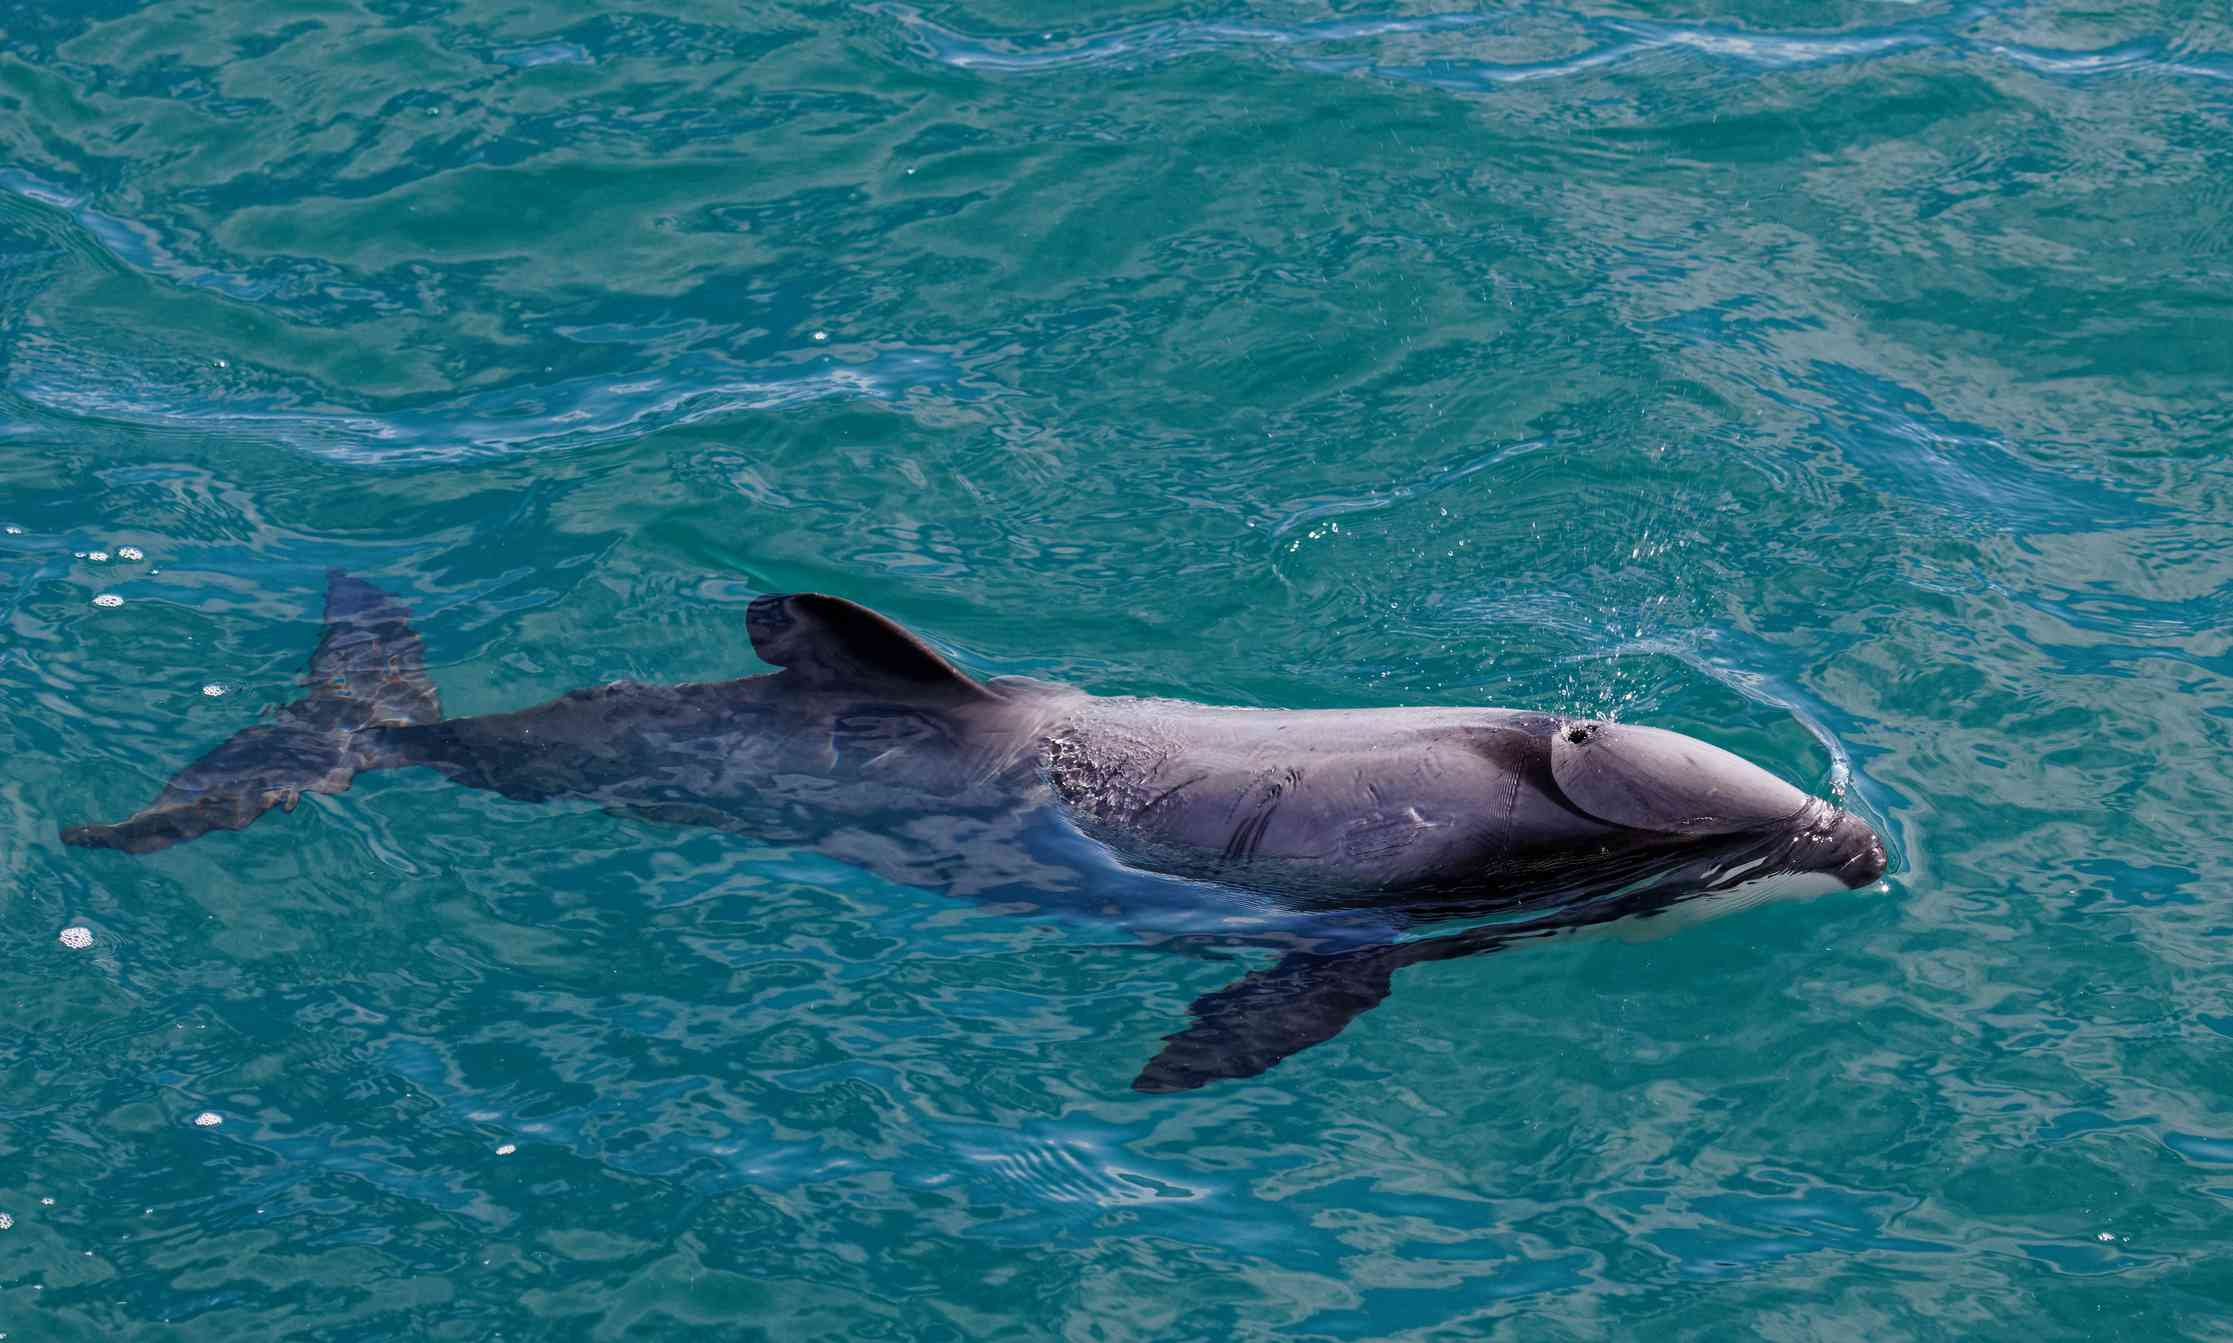 dolphin swimming in turquoise sea